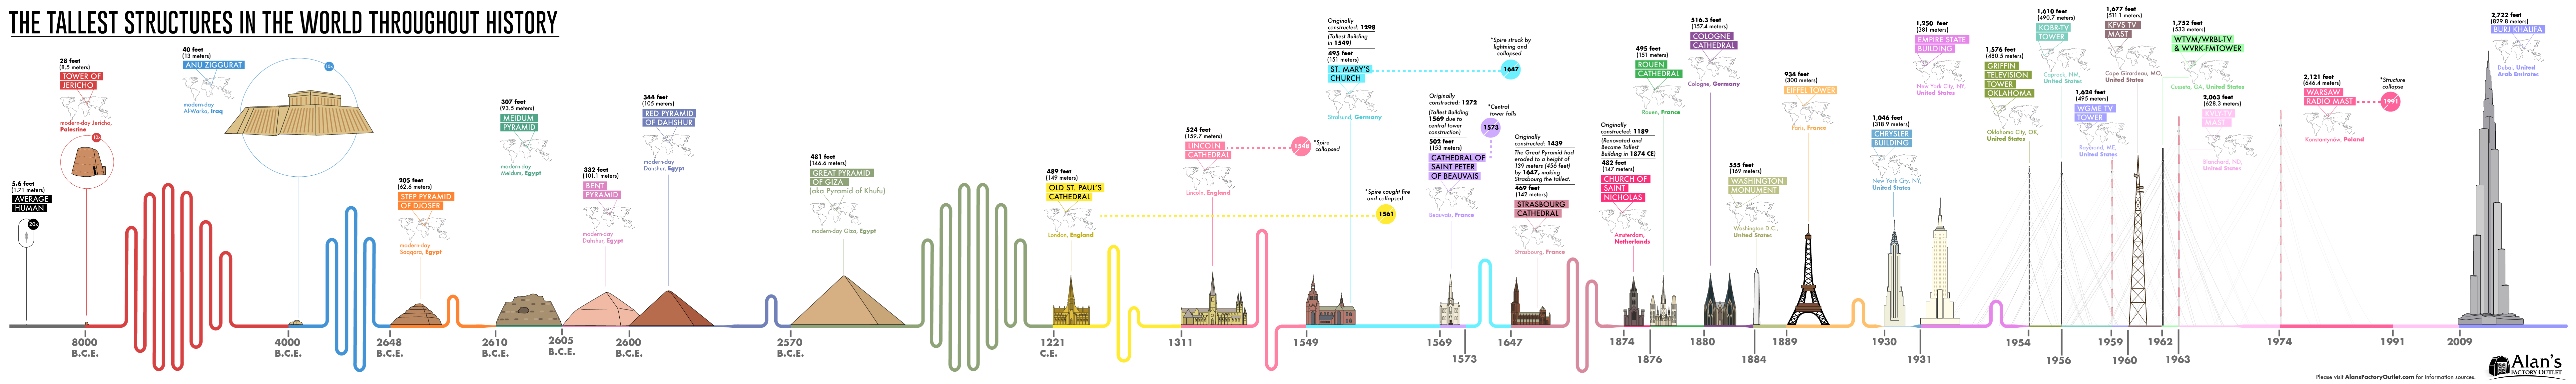 The Tallest Buildings and Structures in the World Throughout History #infographic